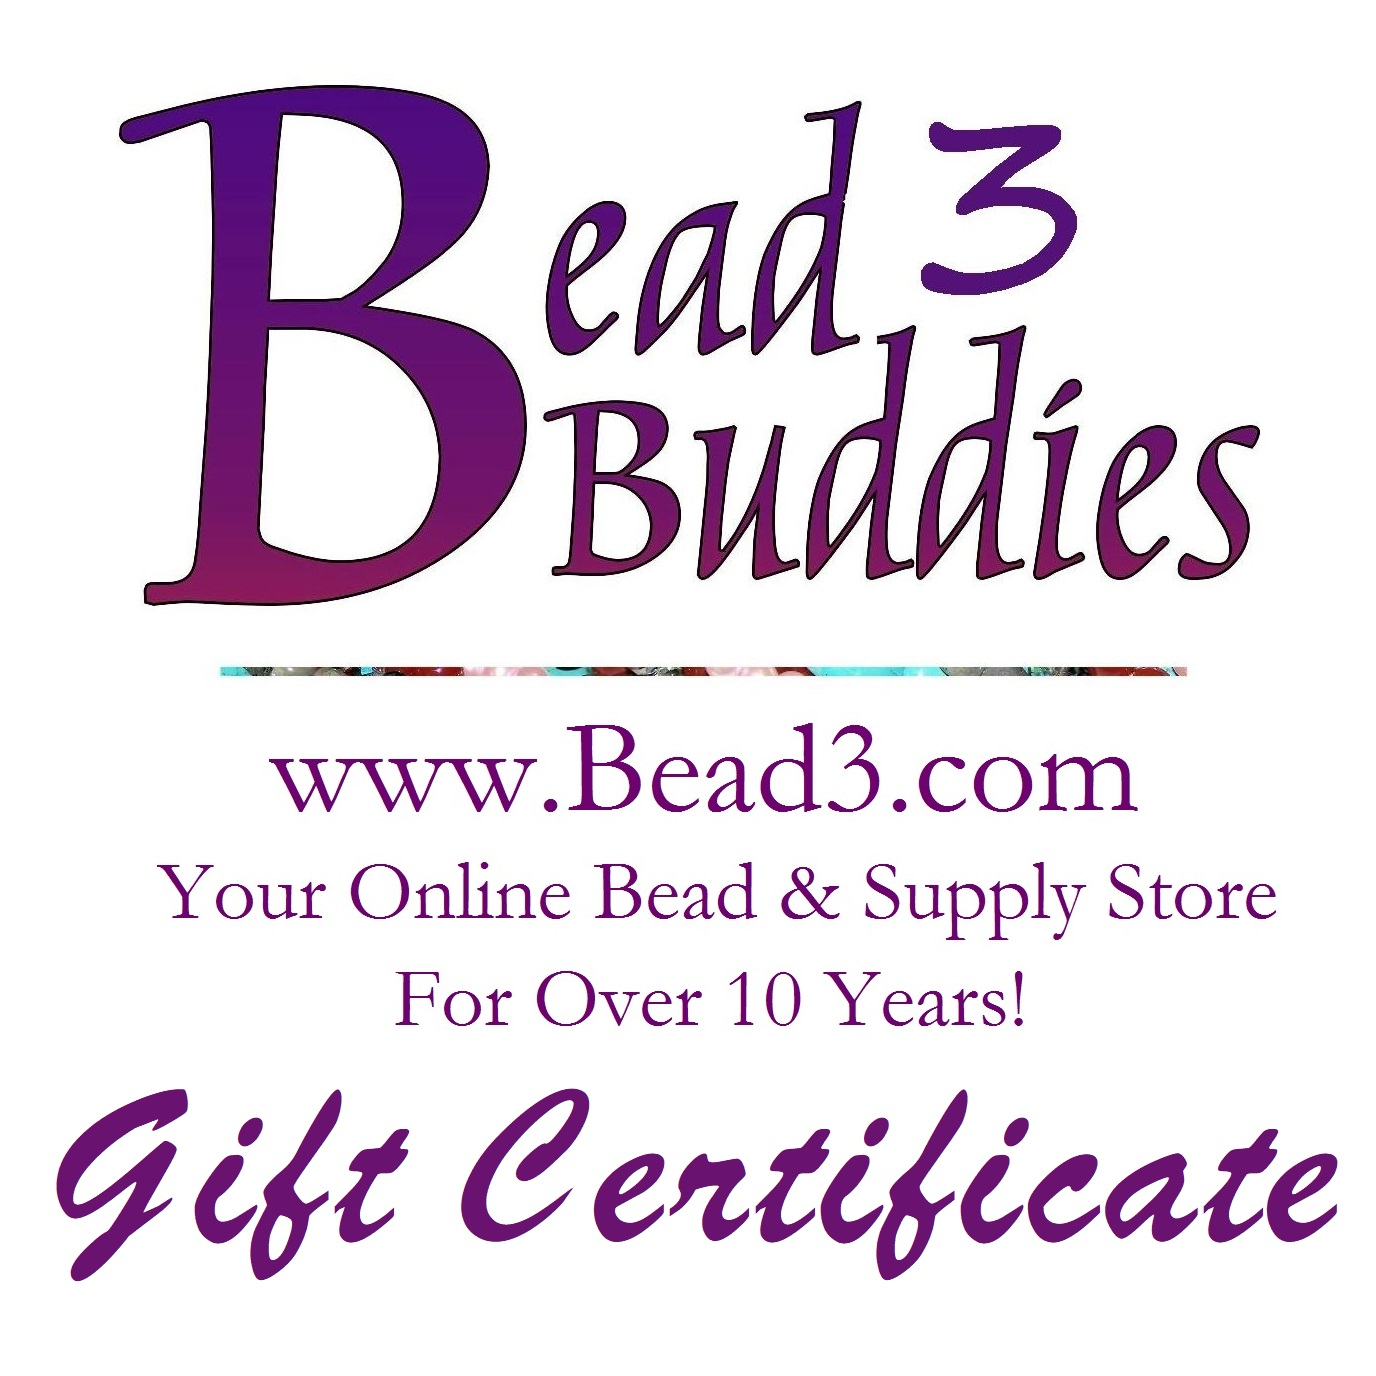 Bead Sales and Special Promotions at Bead3